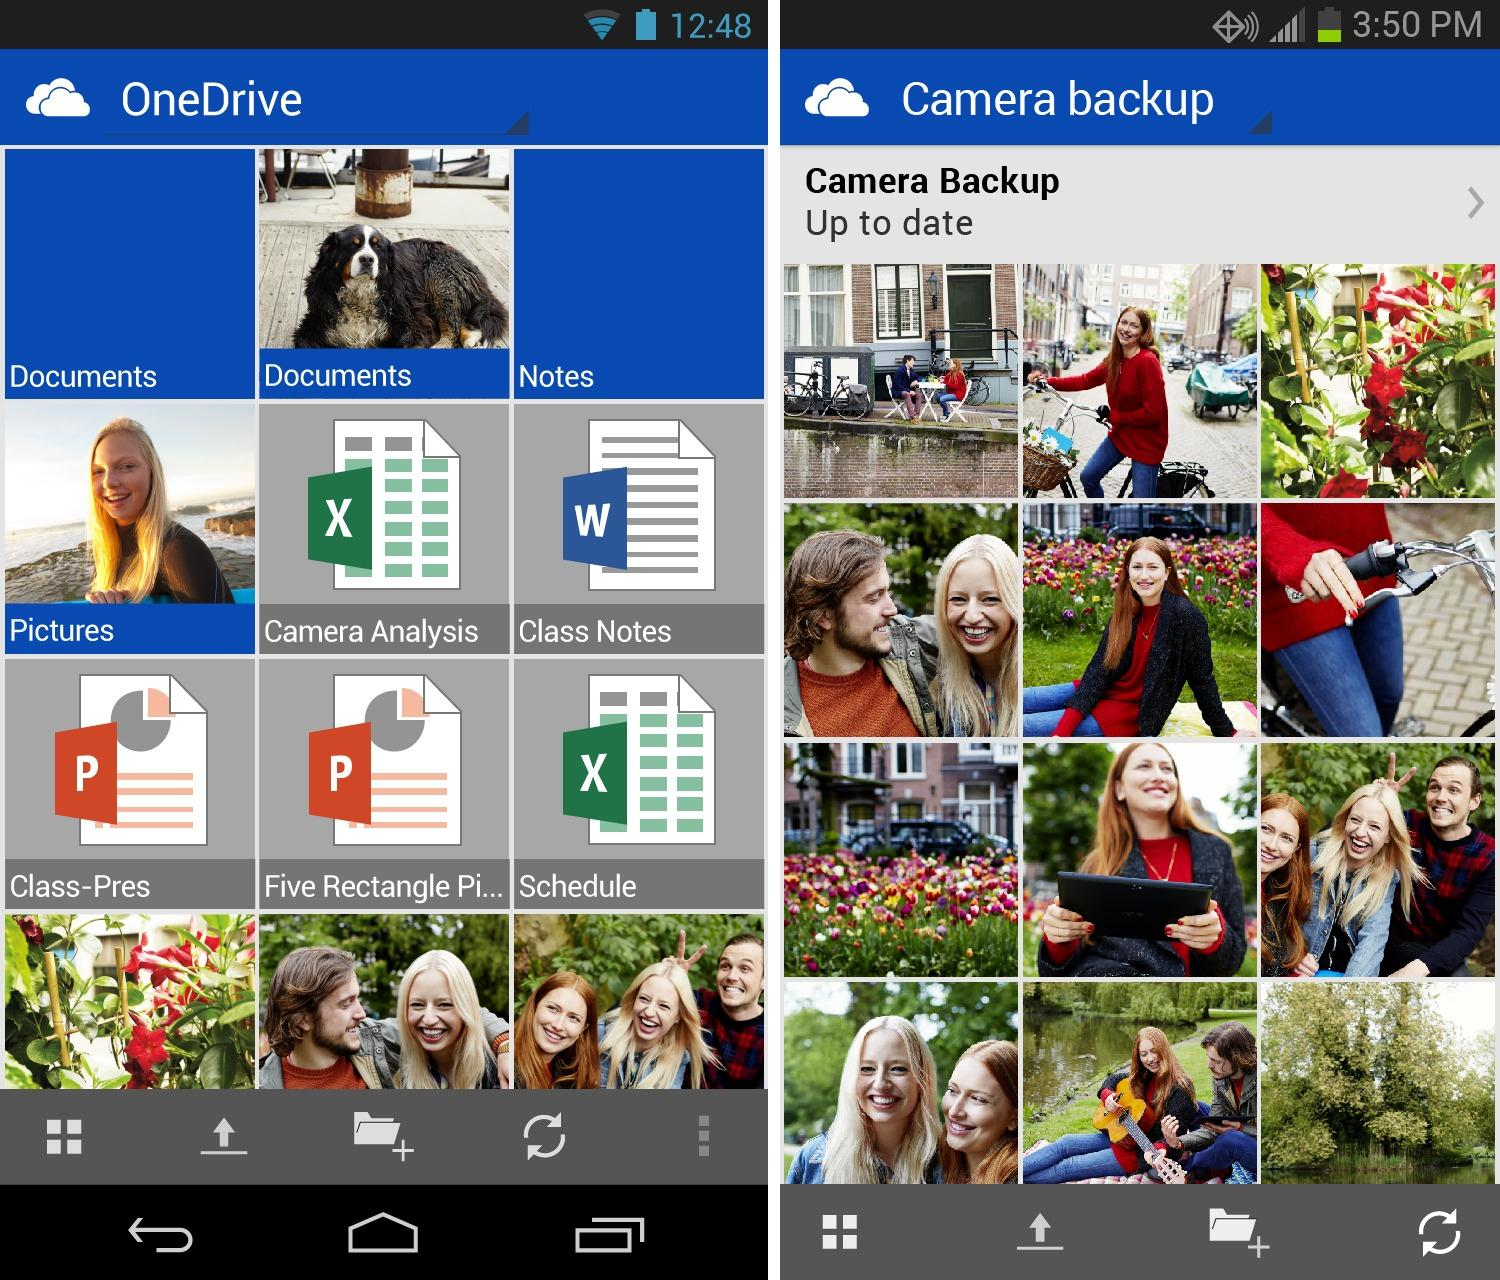 SkyDrive Becomes OneDrive Today, Gains New Video, Photo Features